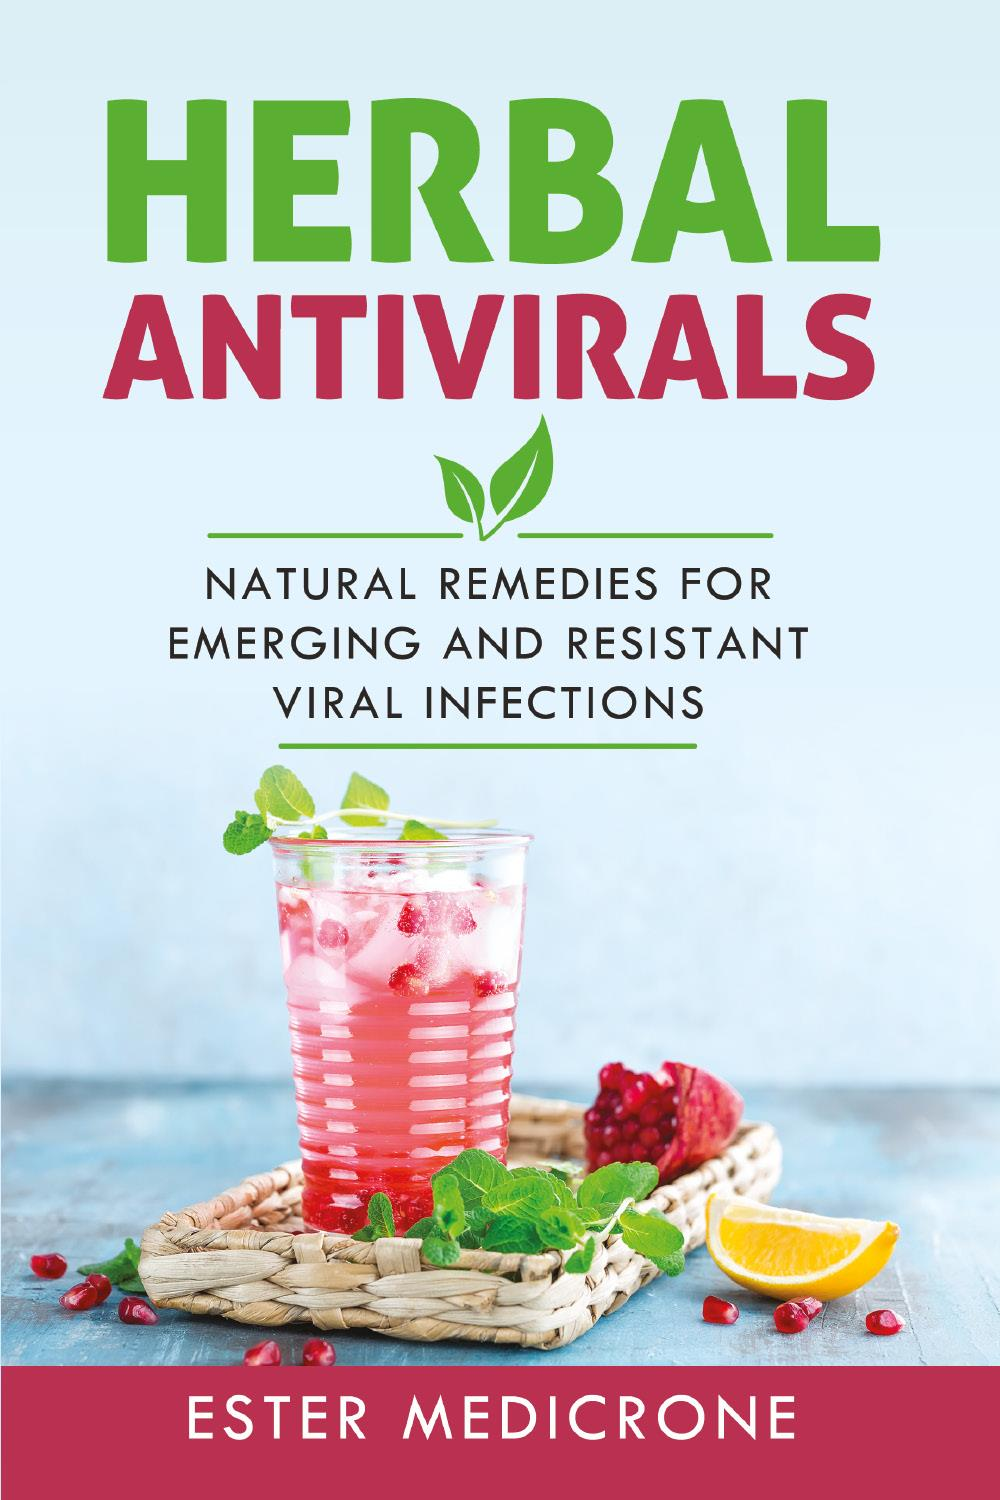 Herbal antivirals. Natural remedies for emerging and resistant viral infections